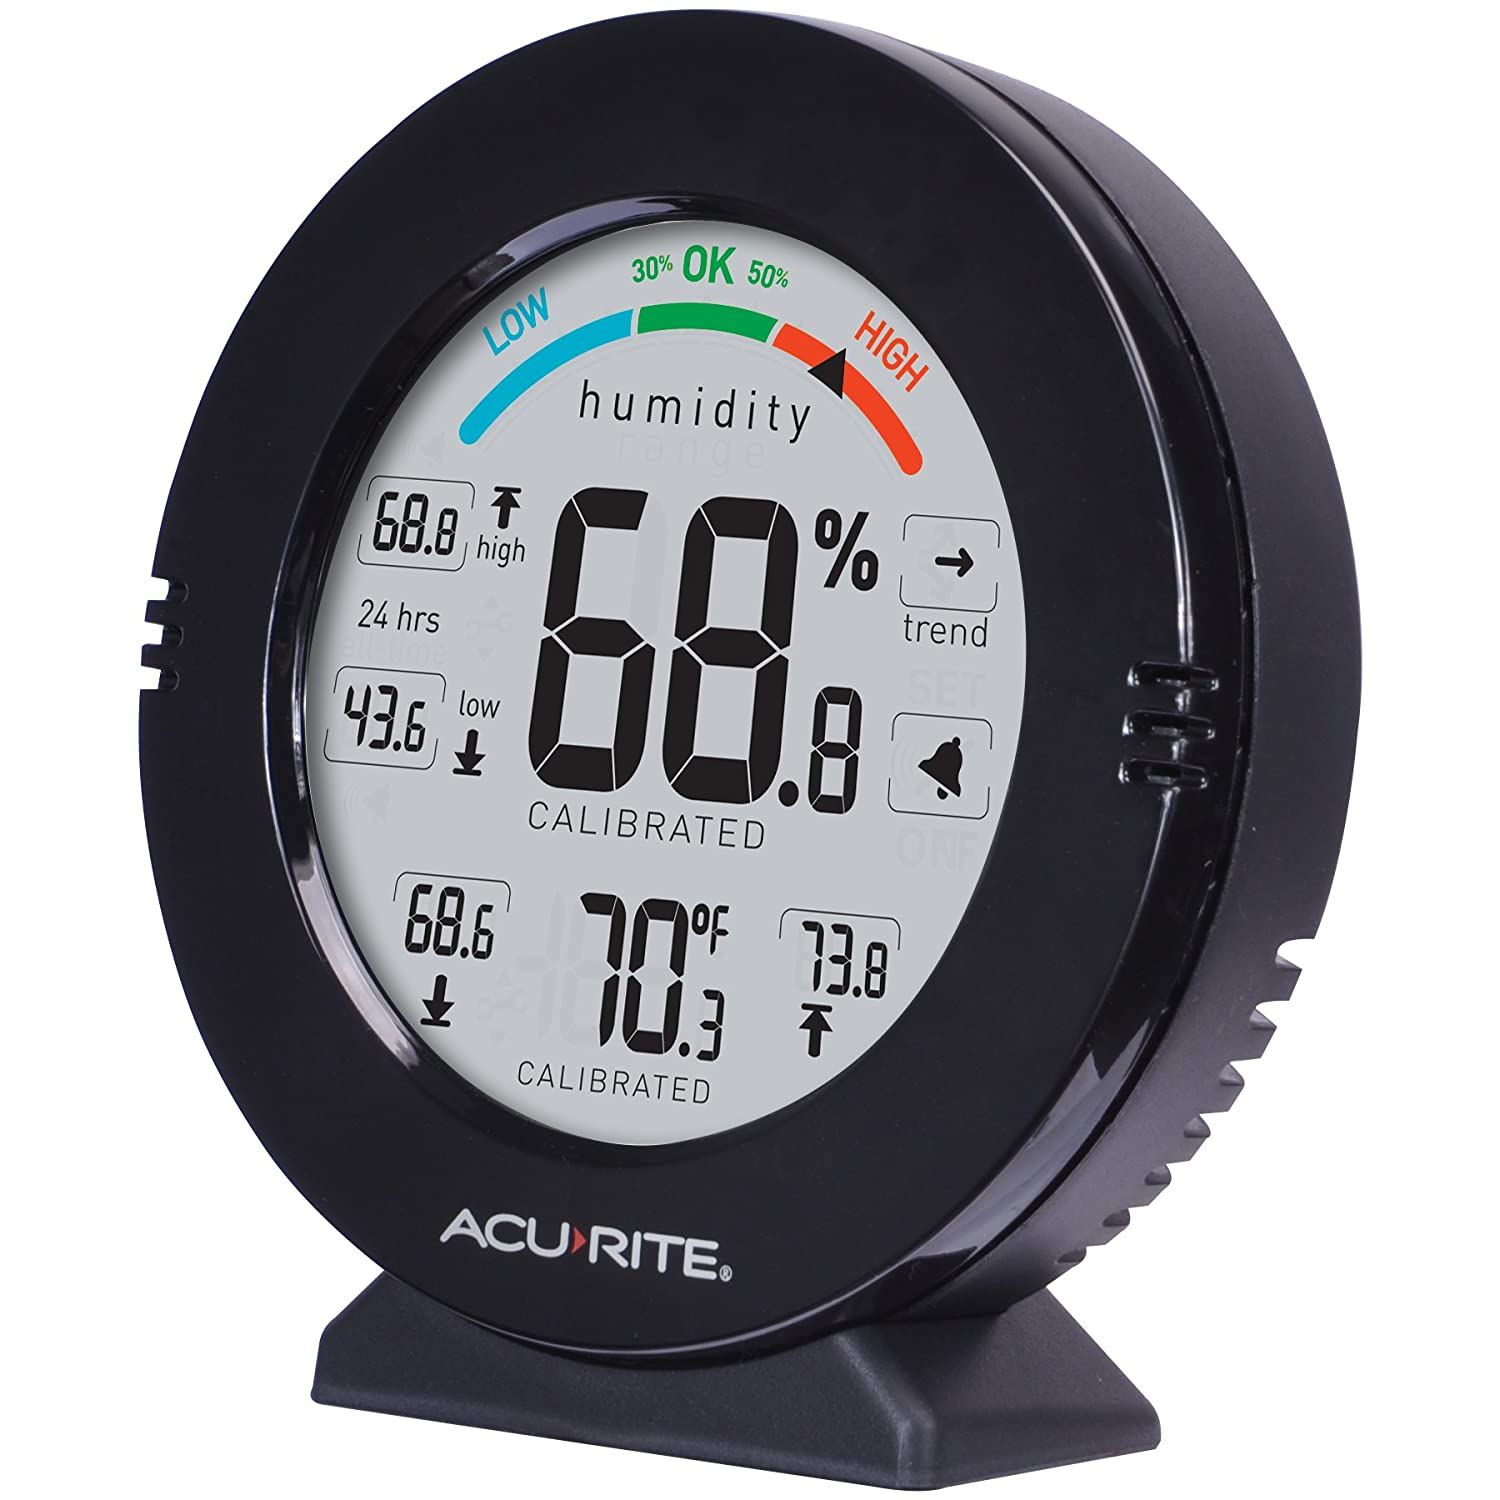 AcuRite 01080 Pro Accuracy Indoor Temperature and Humidity Monitor with Alarms Chaney Instruments 01080M